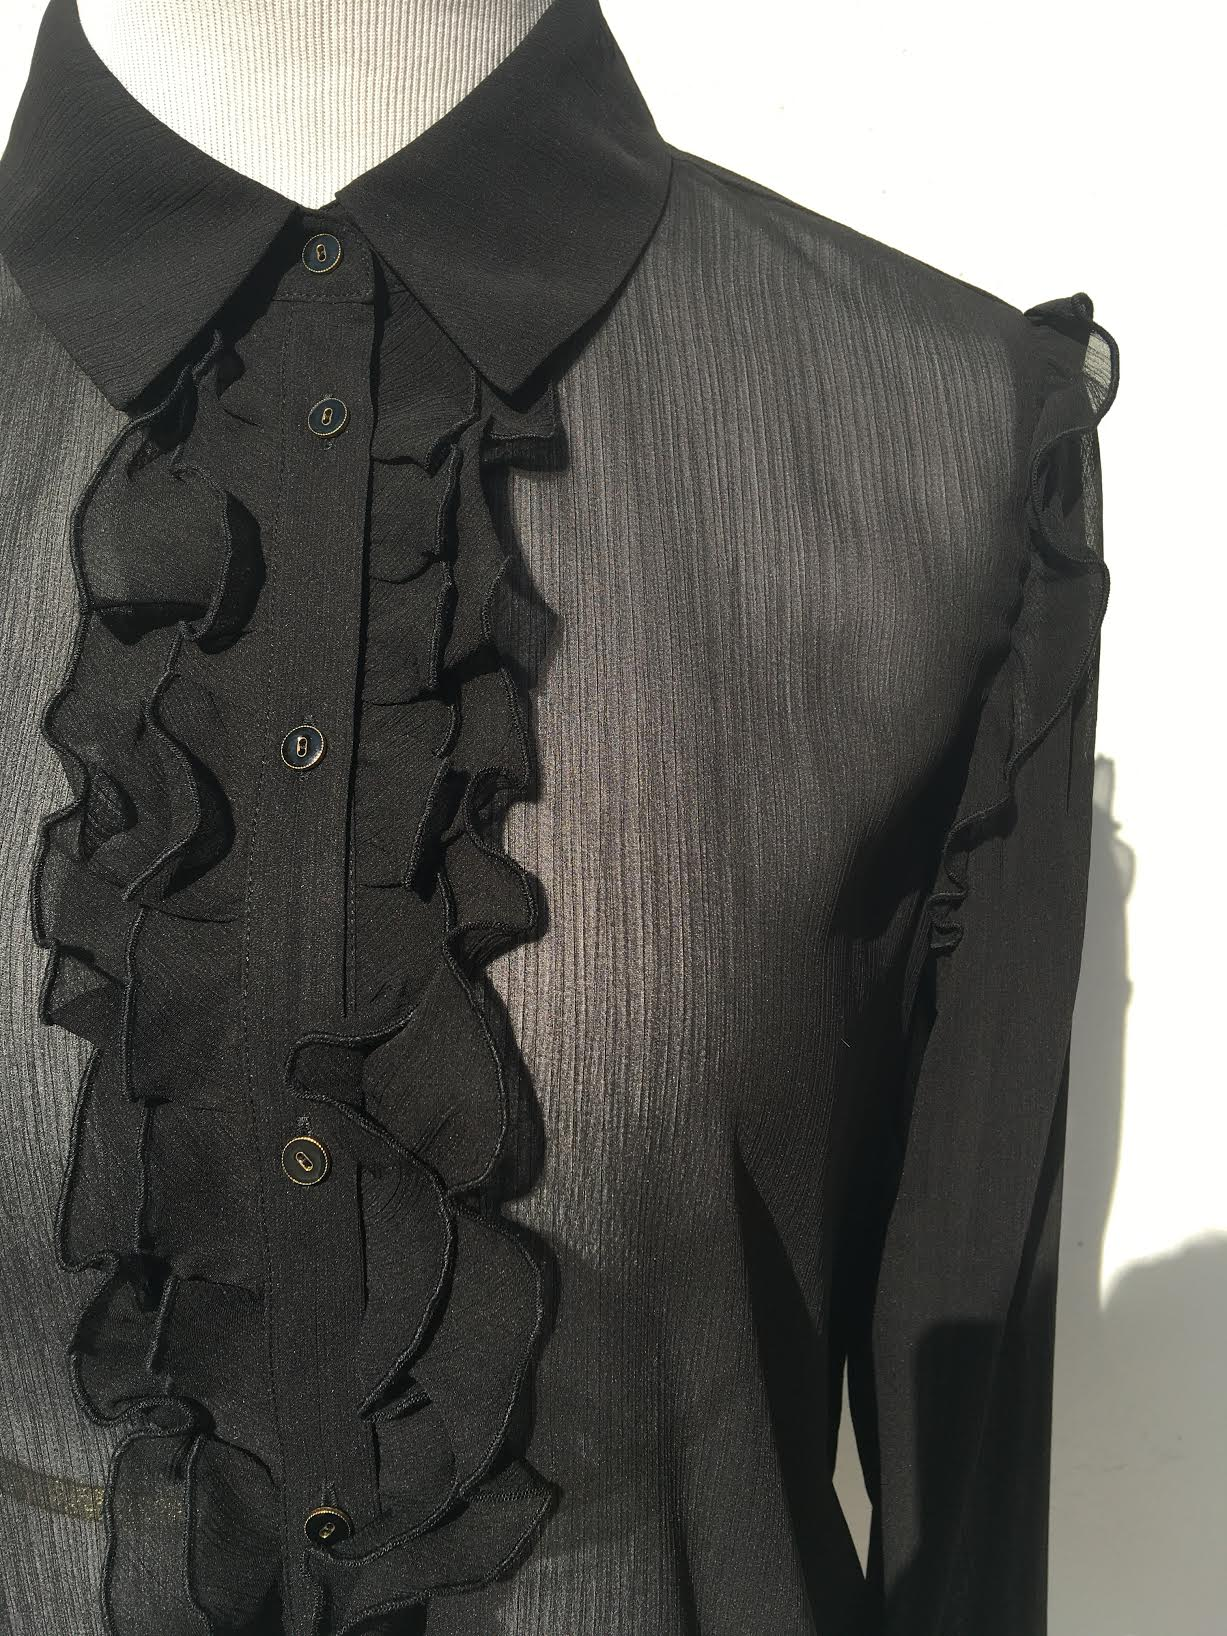 Button Up Shirt W/ Ruffle Detailing